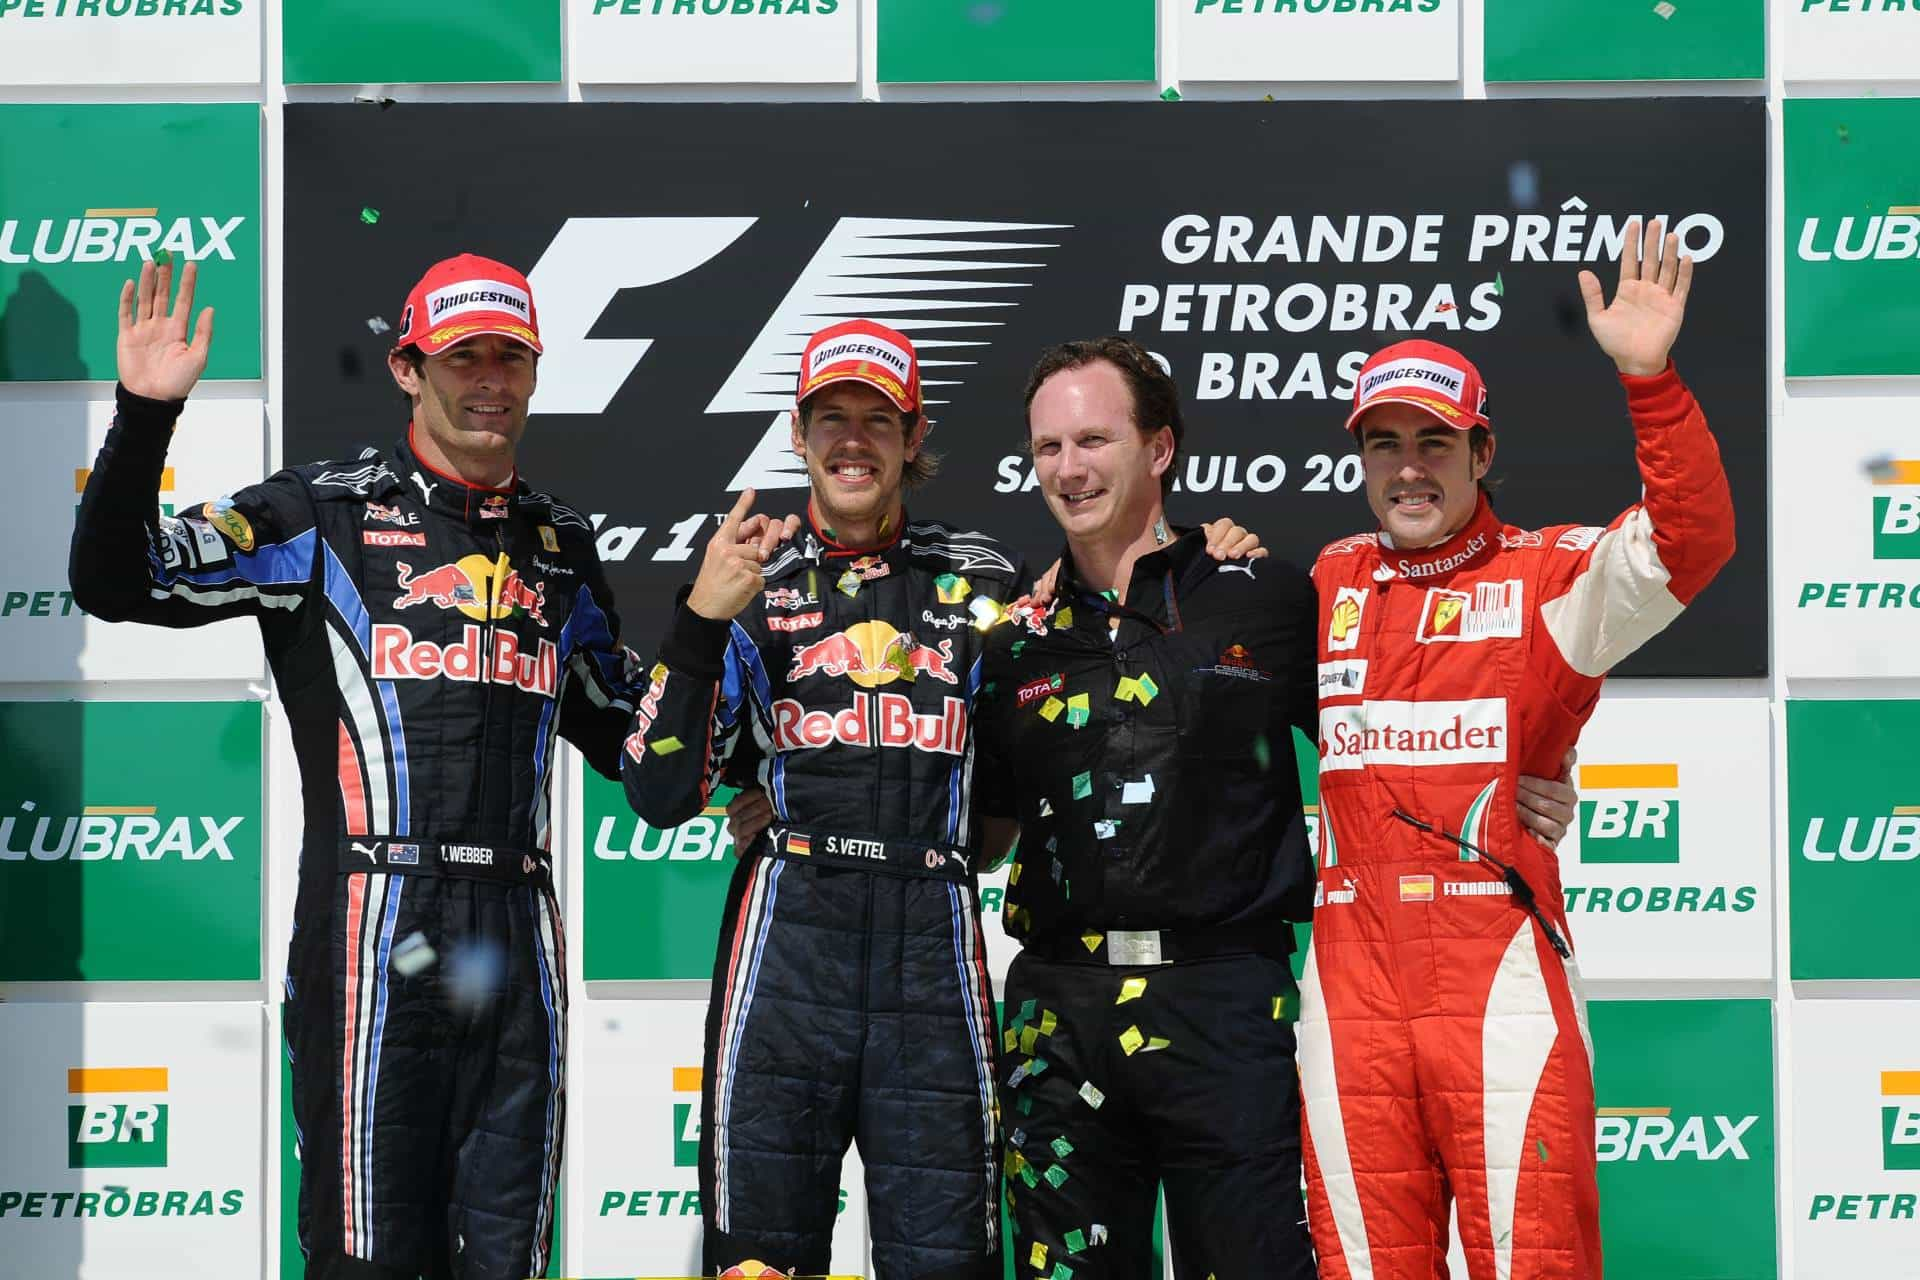 Brazilian GP F1 2010 podium Photo Ferrari